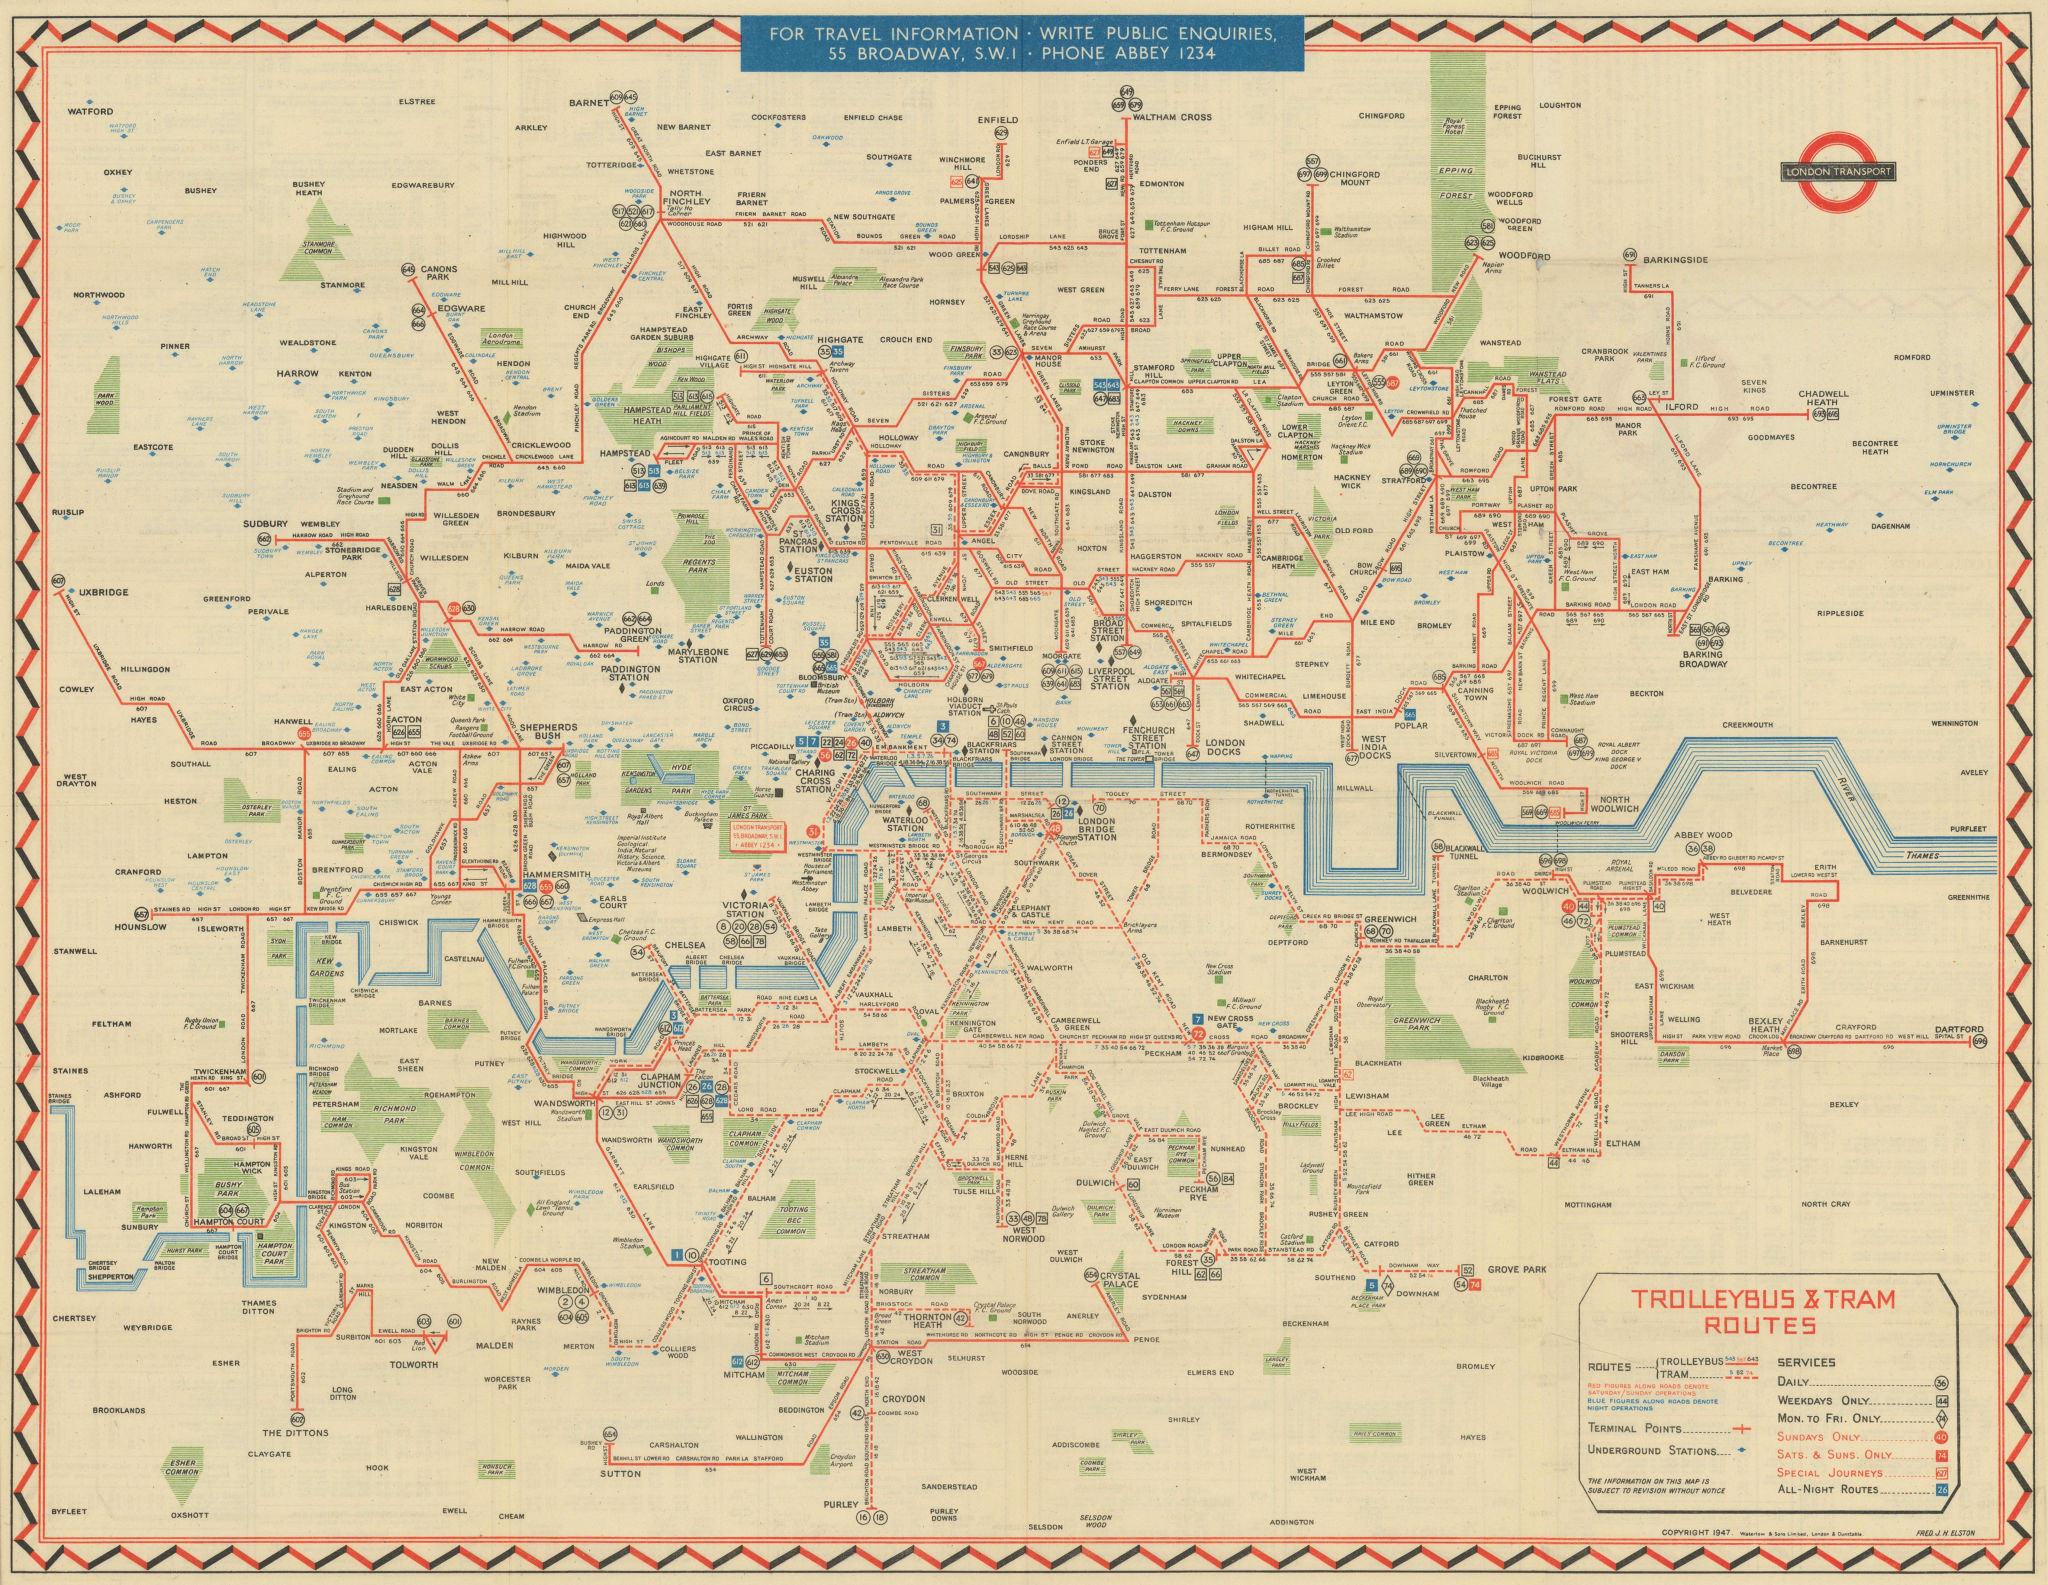 London Transport Trolleybus & Tram route map. ELSTON. May 1949 old vintage